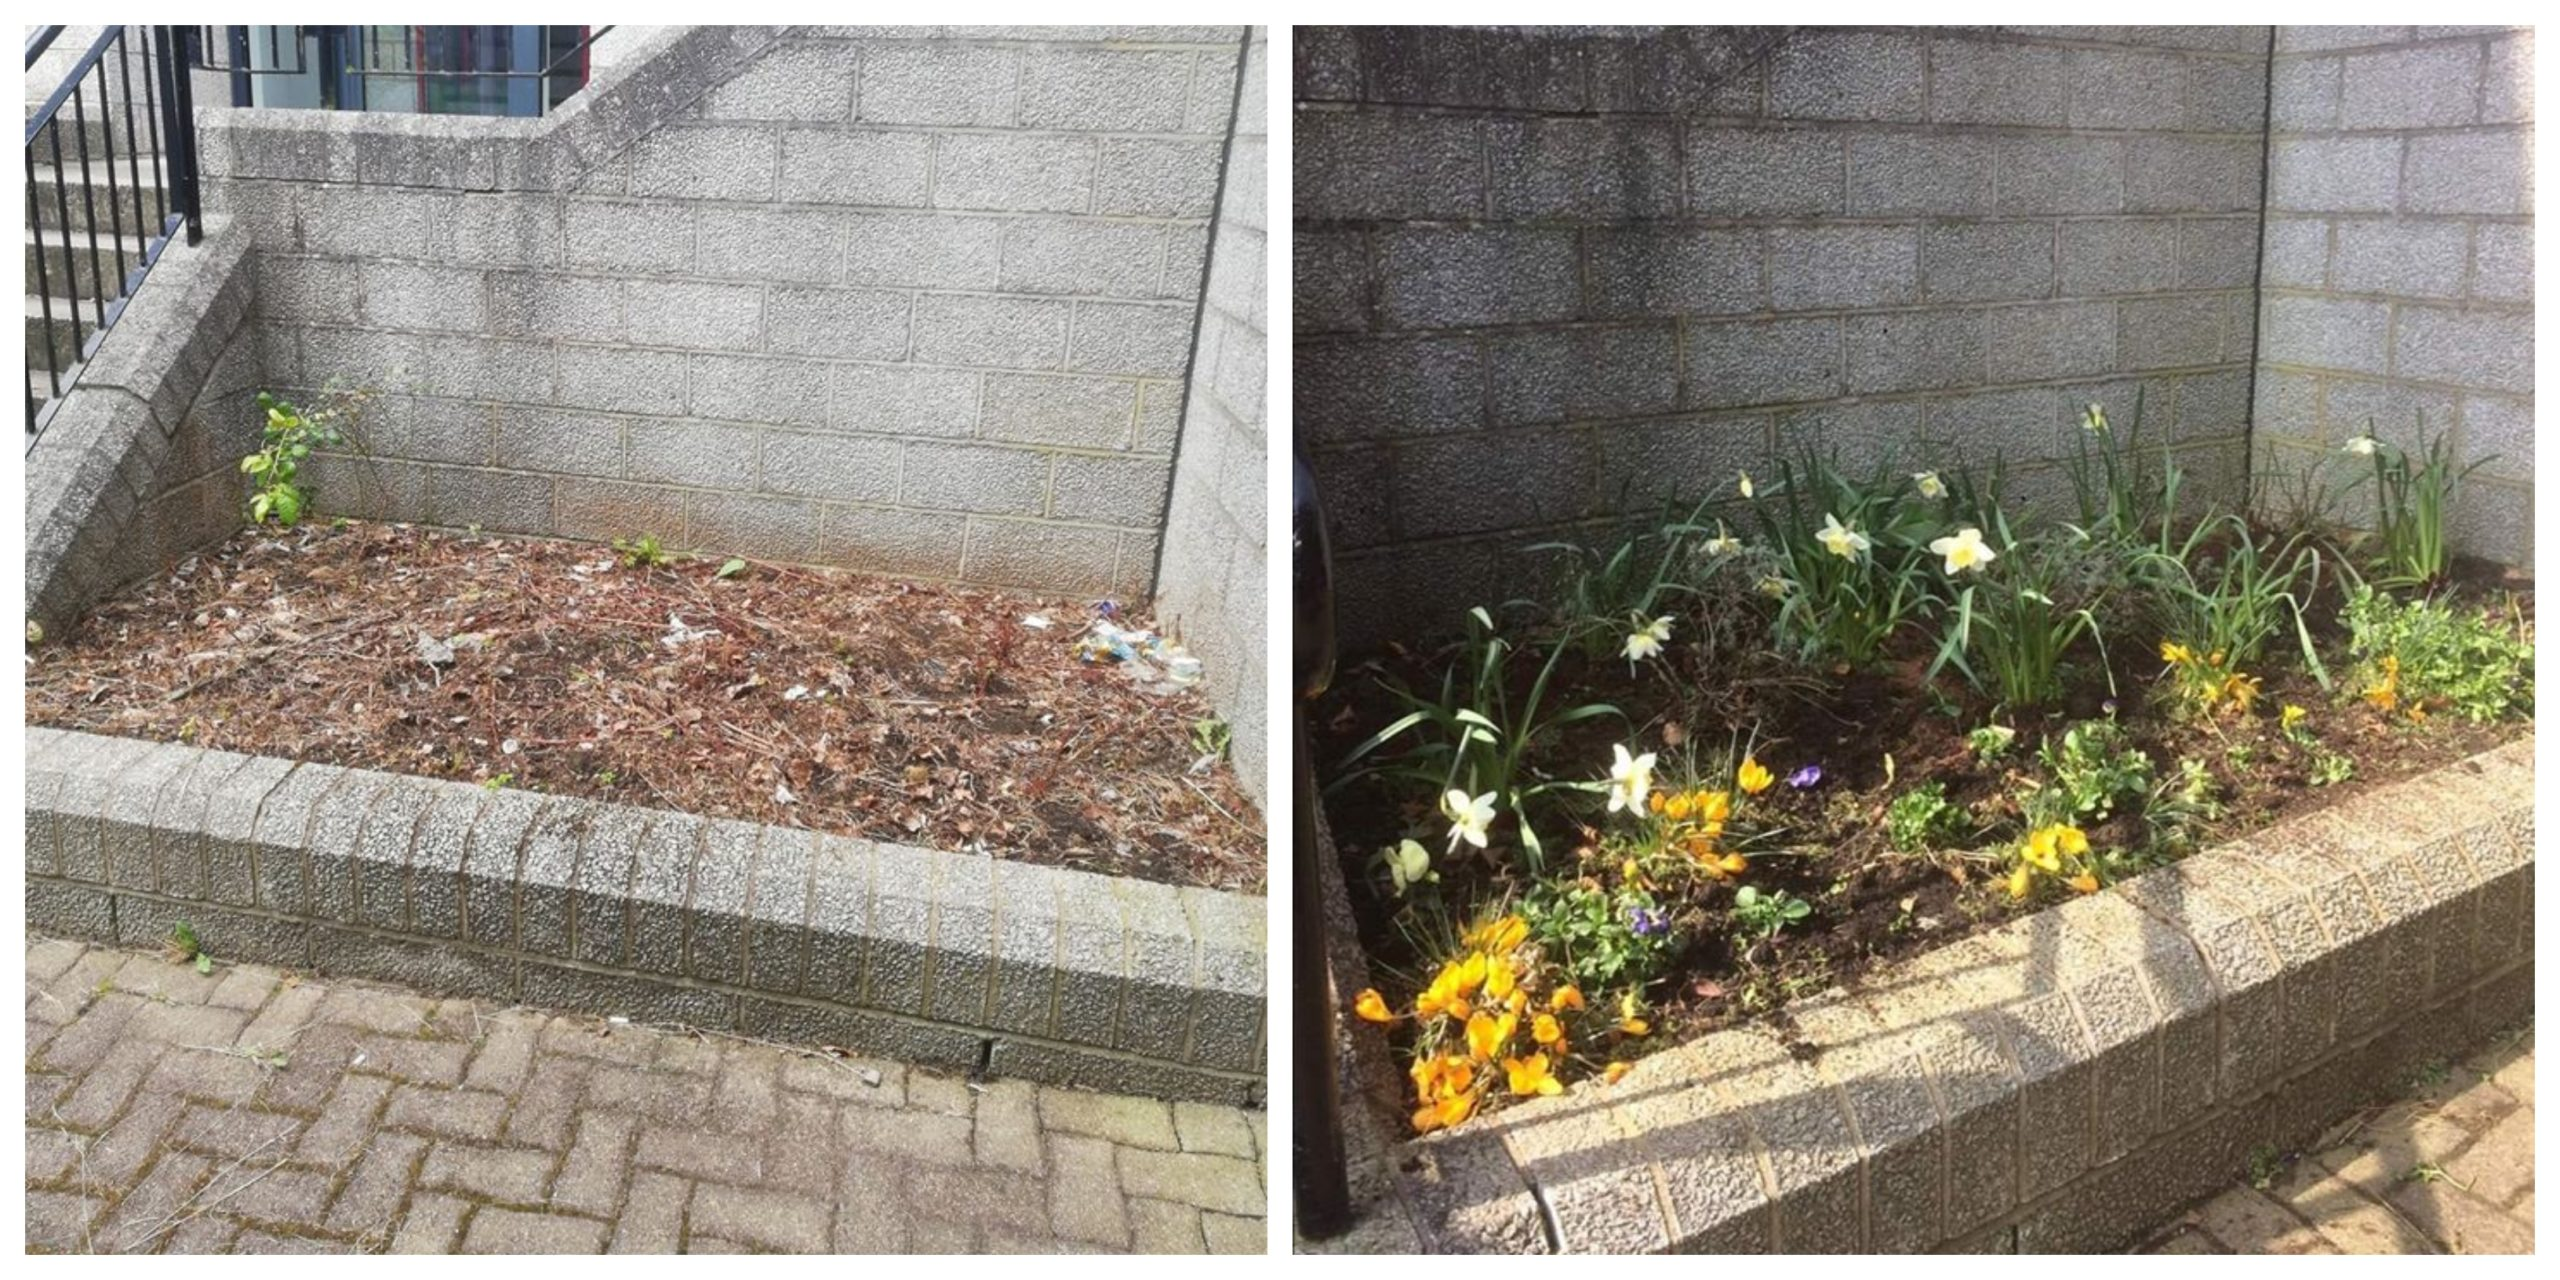 A before and after of the garden at Fountain Grange.